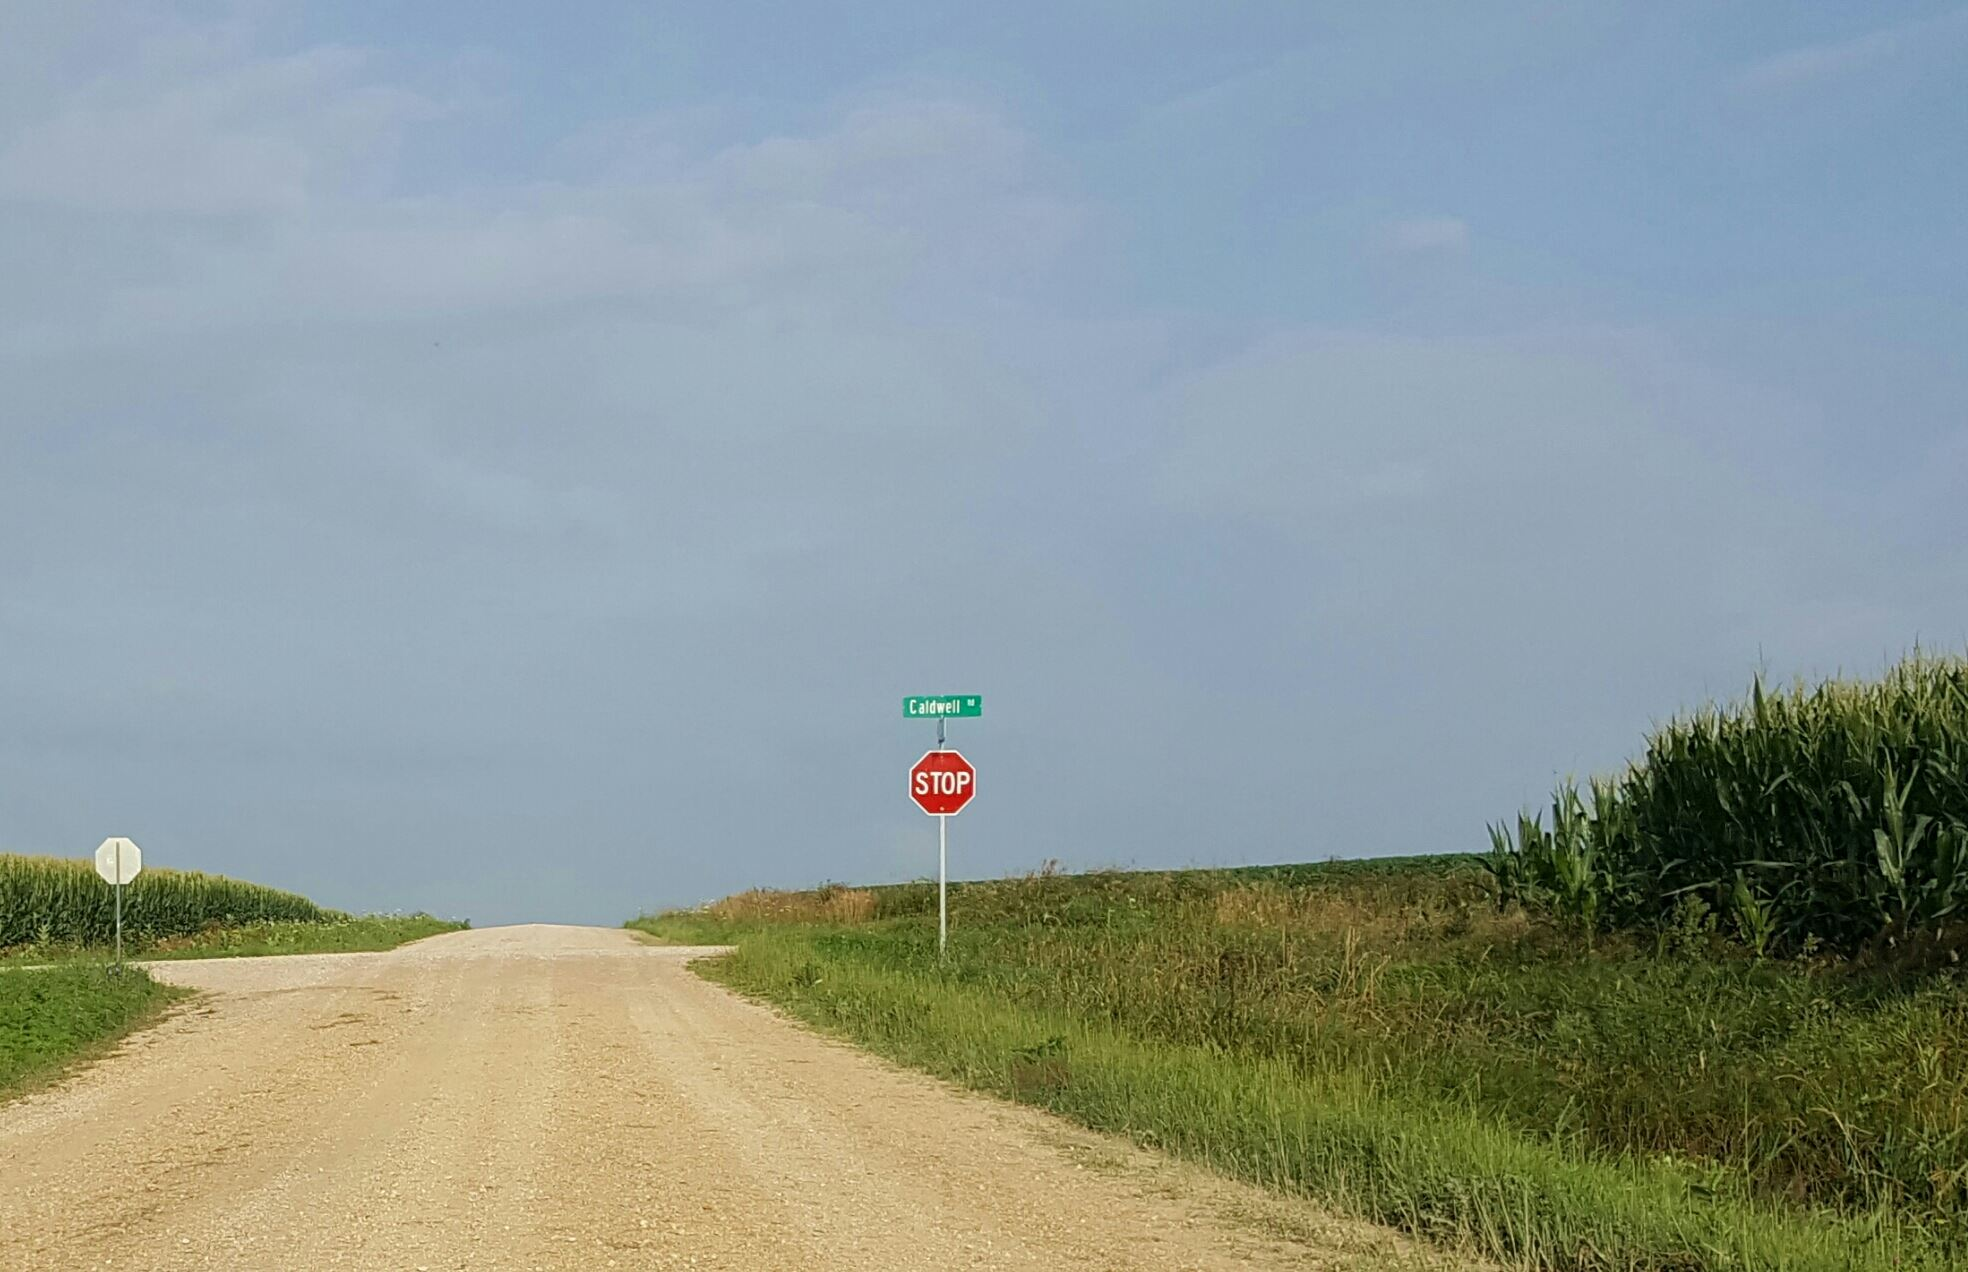 Rural intersection with corn crops